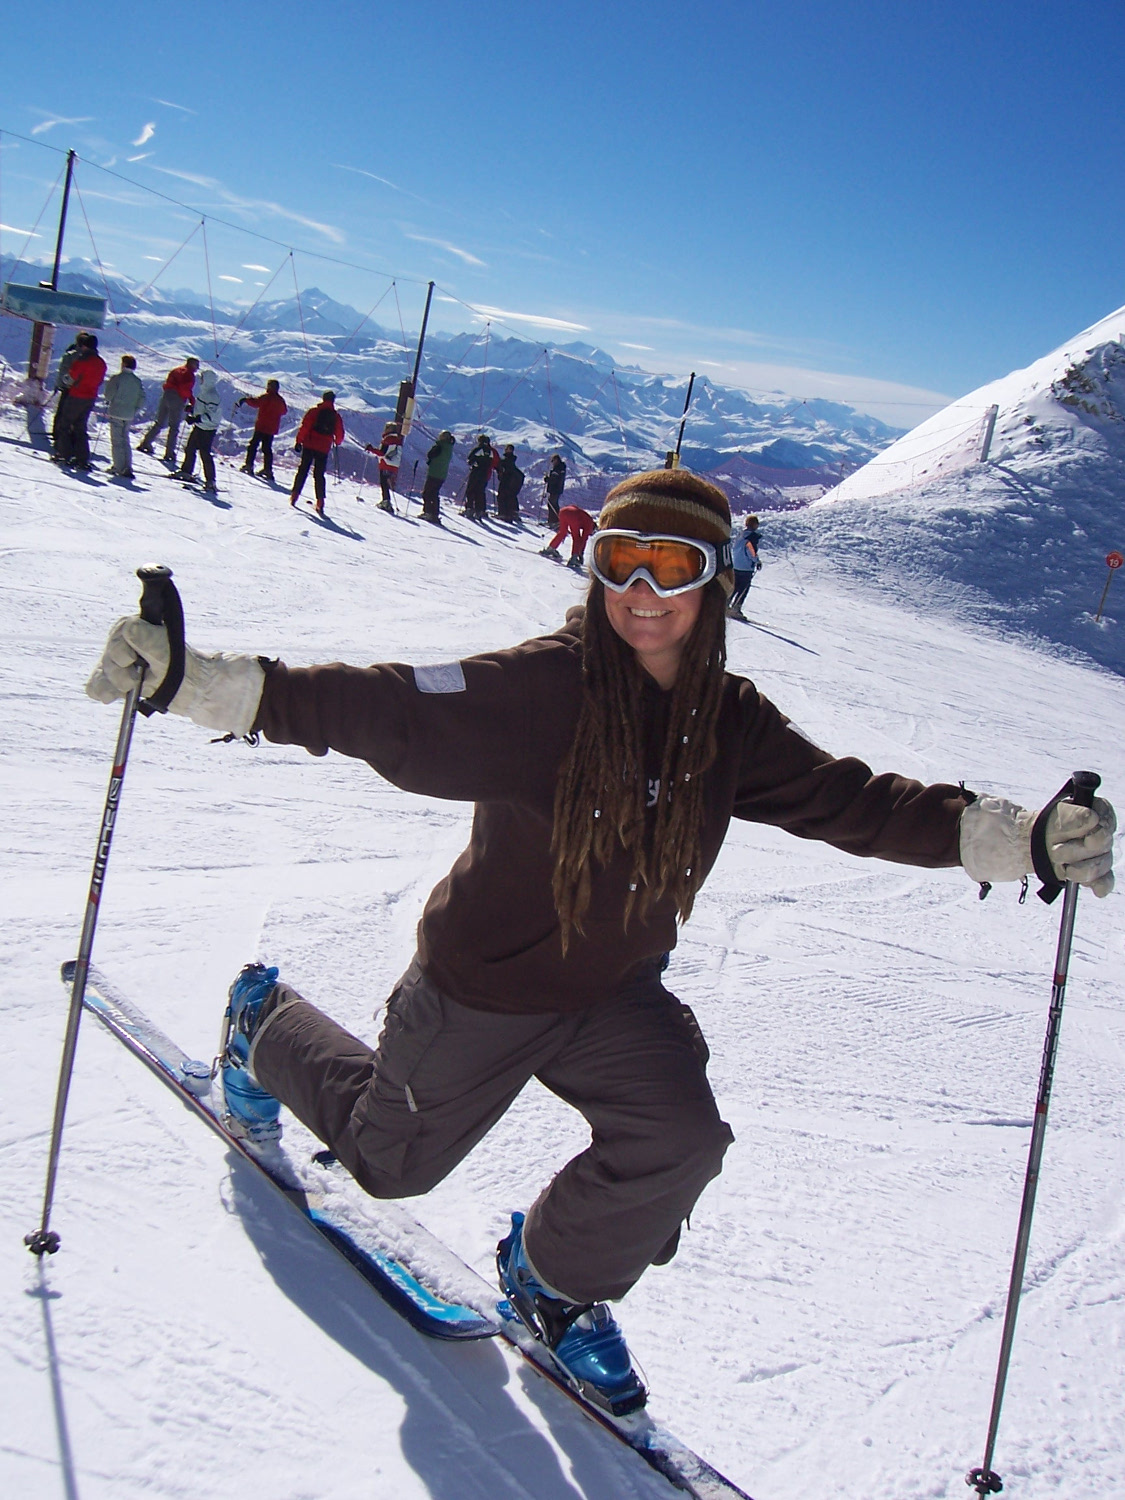 Wendy on the slopes